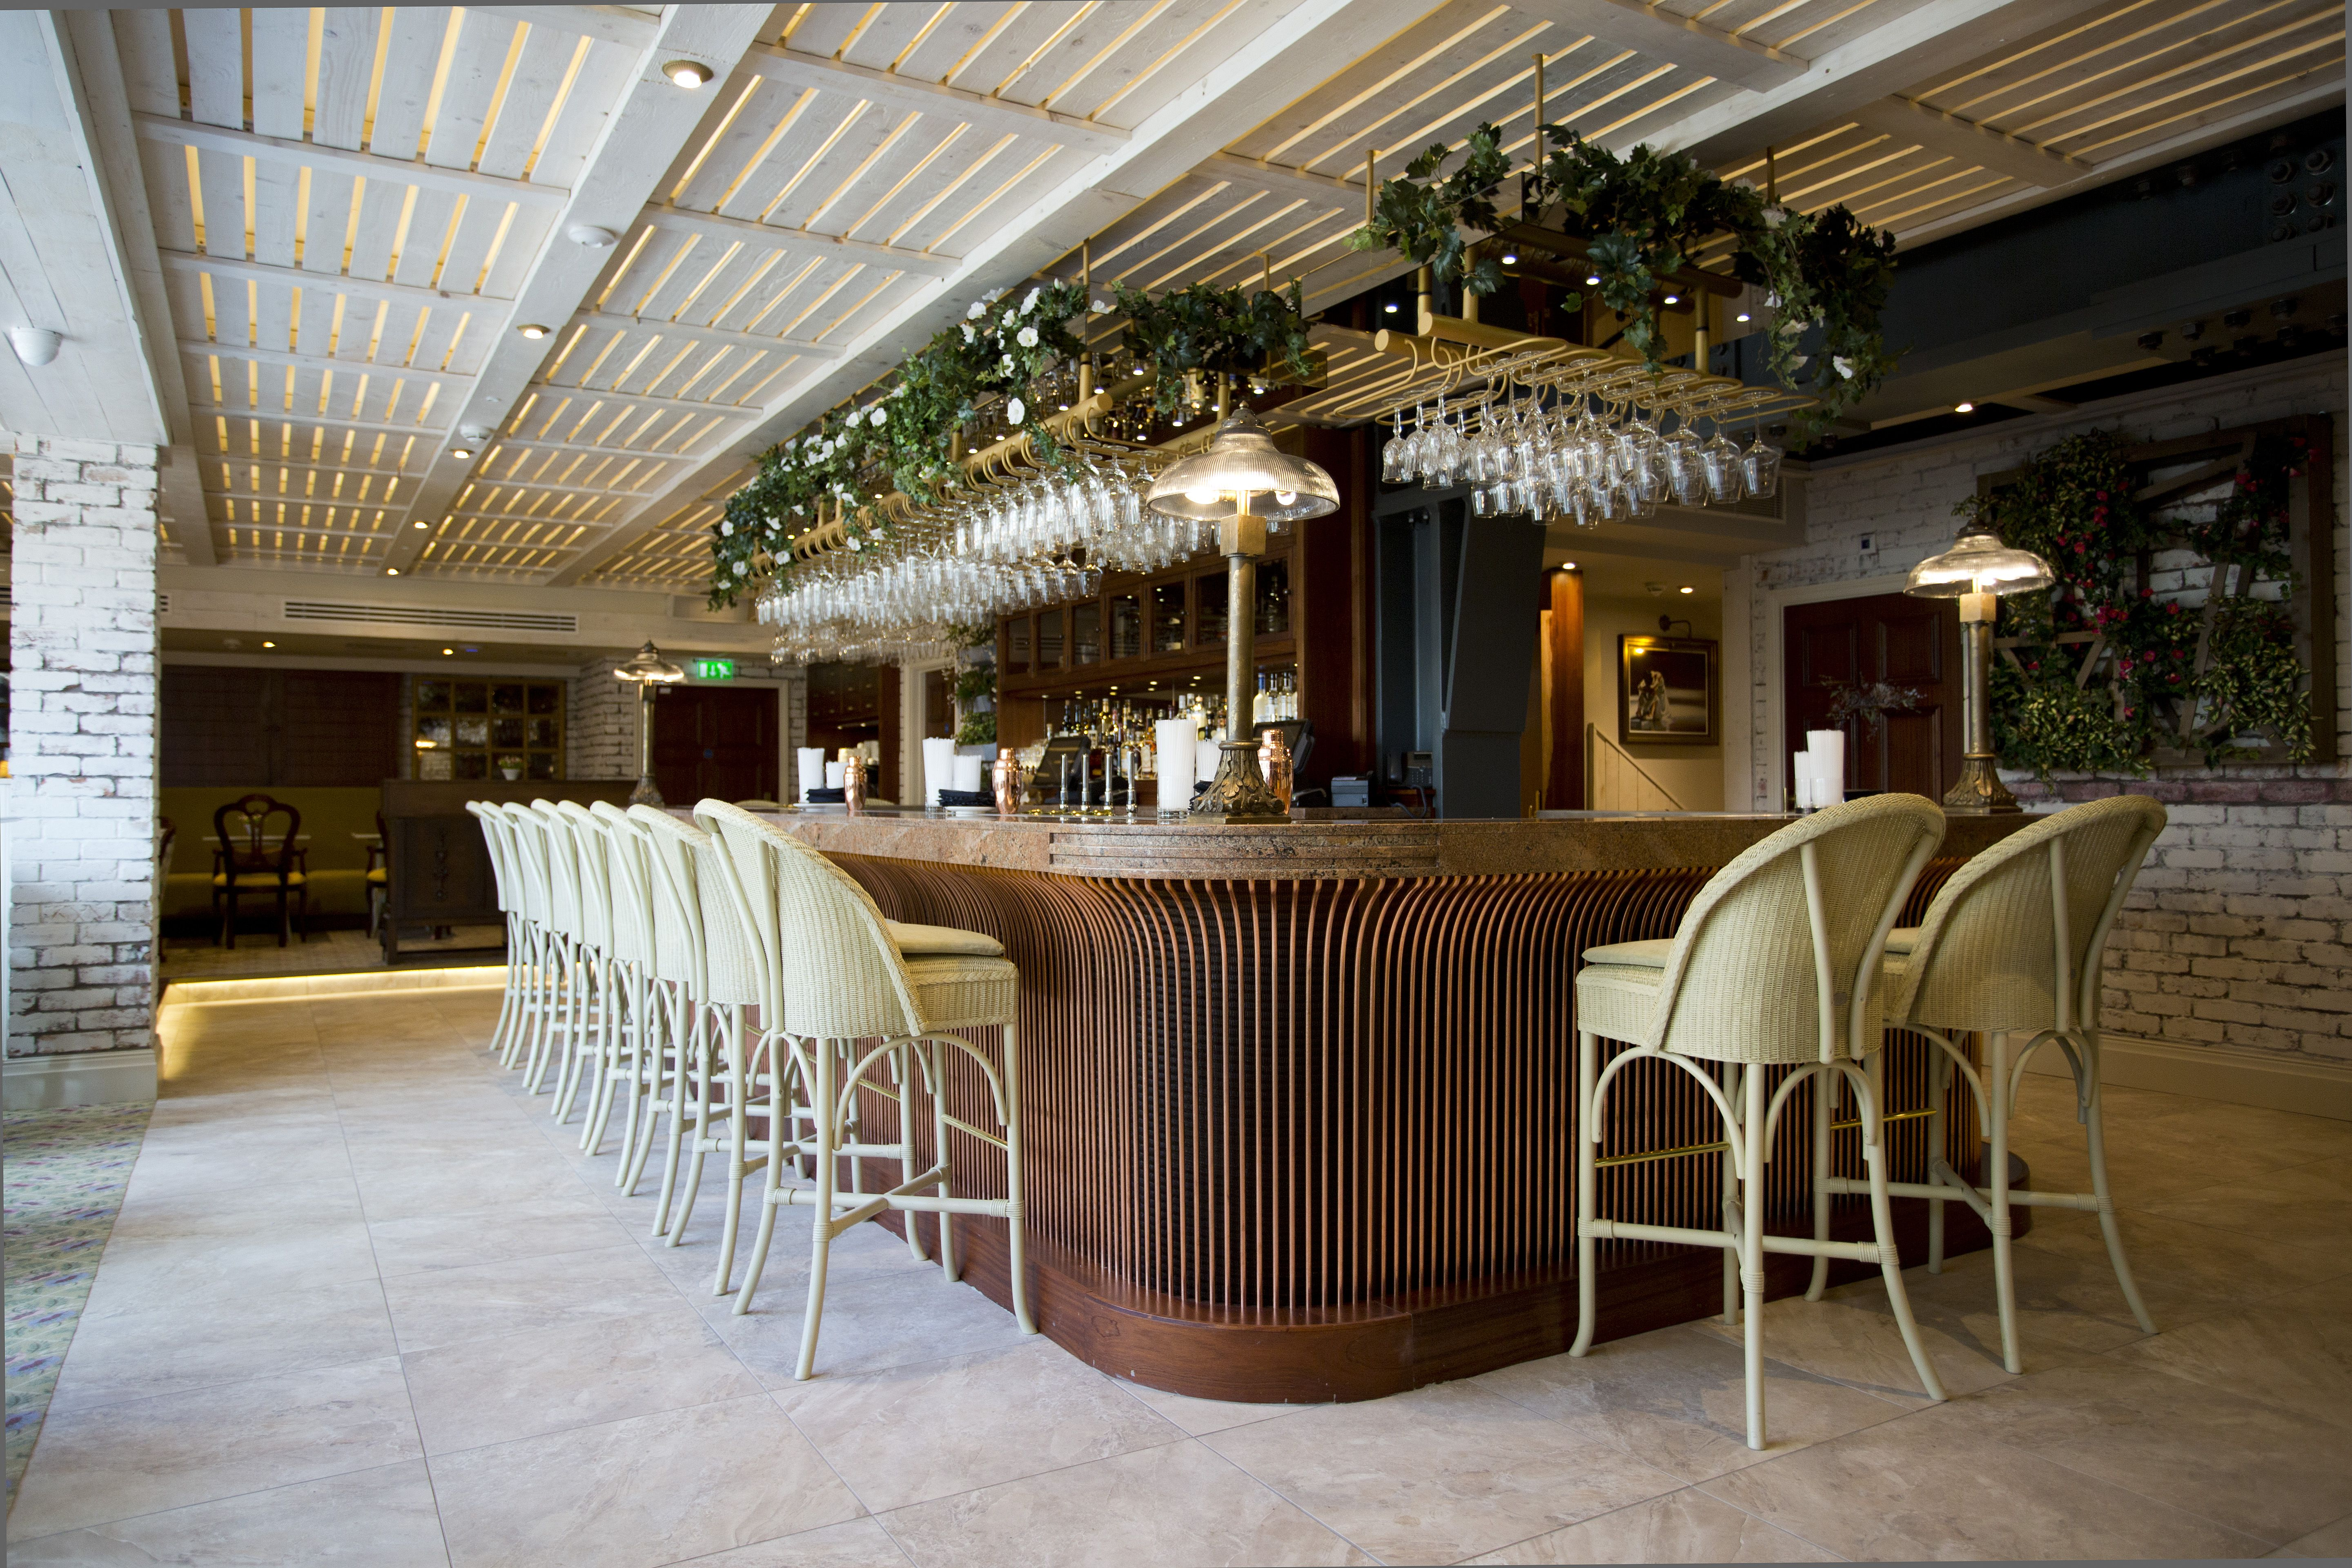 Bar Design Rattan And Wicker With Draped Foliage And Planting Basement Restaurant Bar Design By Ti Bar Design Restaurant Bar Restaurant Interior Cafe Design